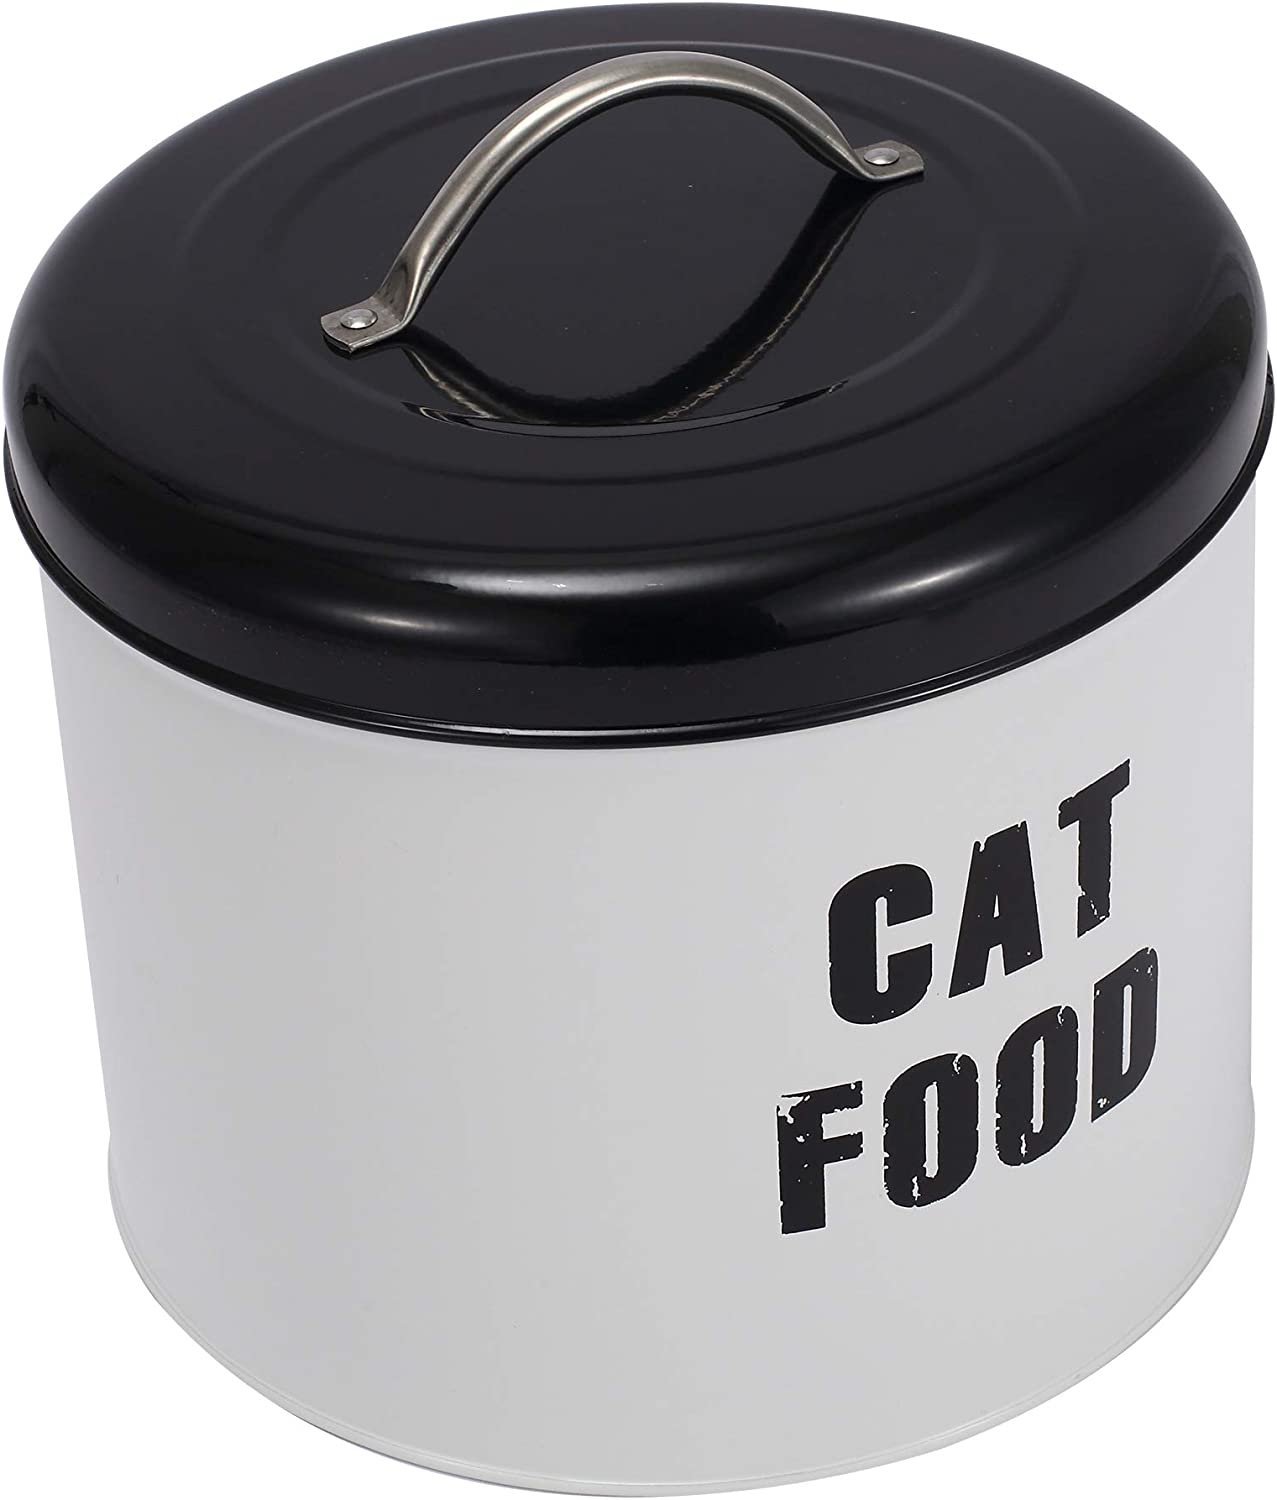 Brabtod White Farmhouse Dog Food Canister, Decorative Kitchen Food Storage Holder for Dog Treat Container bin and Food